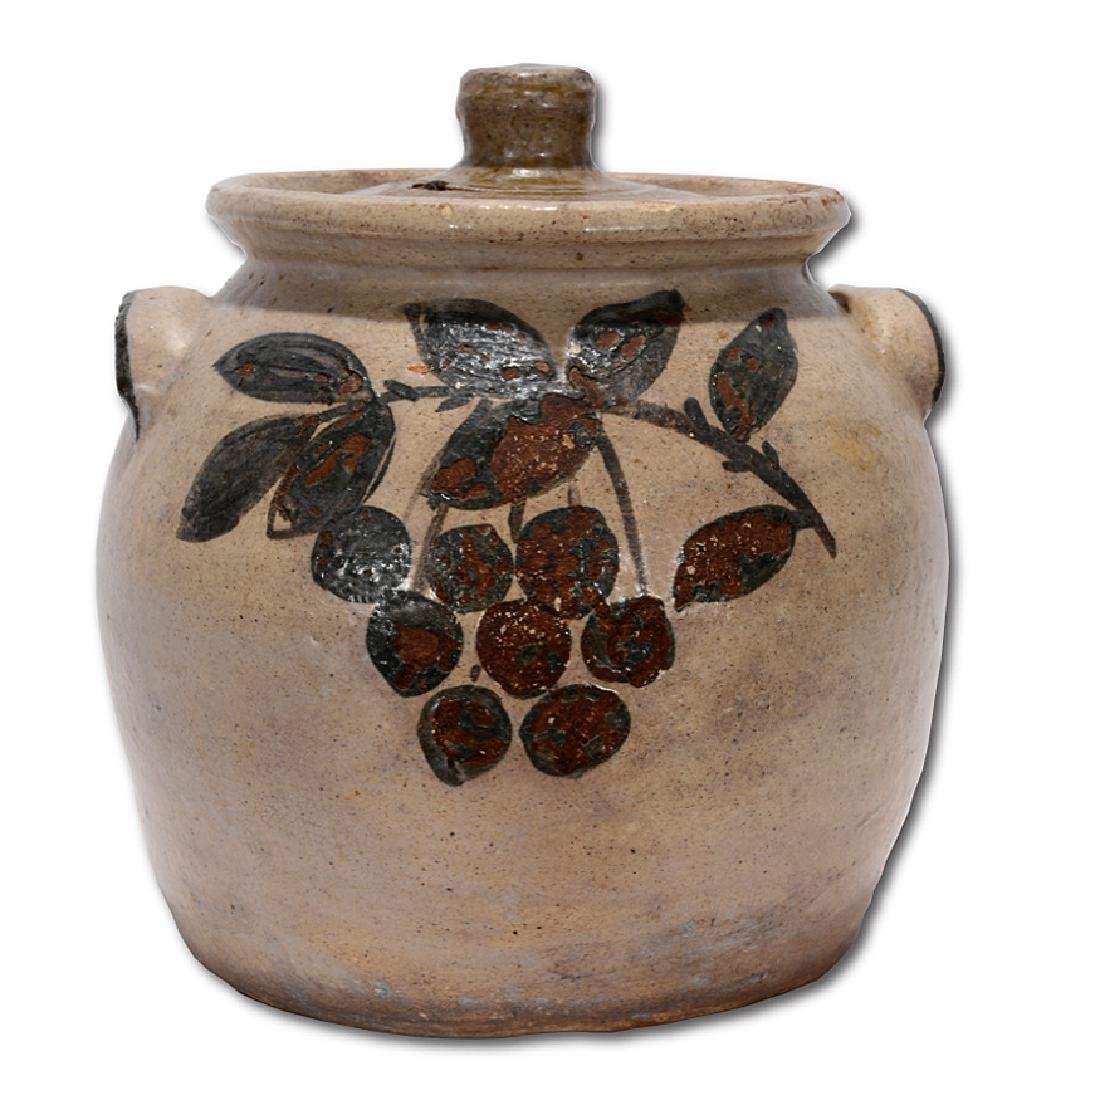 Arie Meaders. Bean Pot with Cherry Decorations.